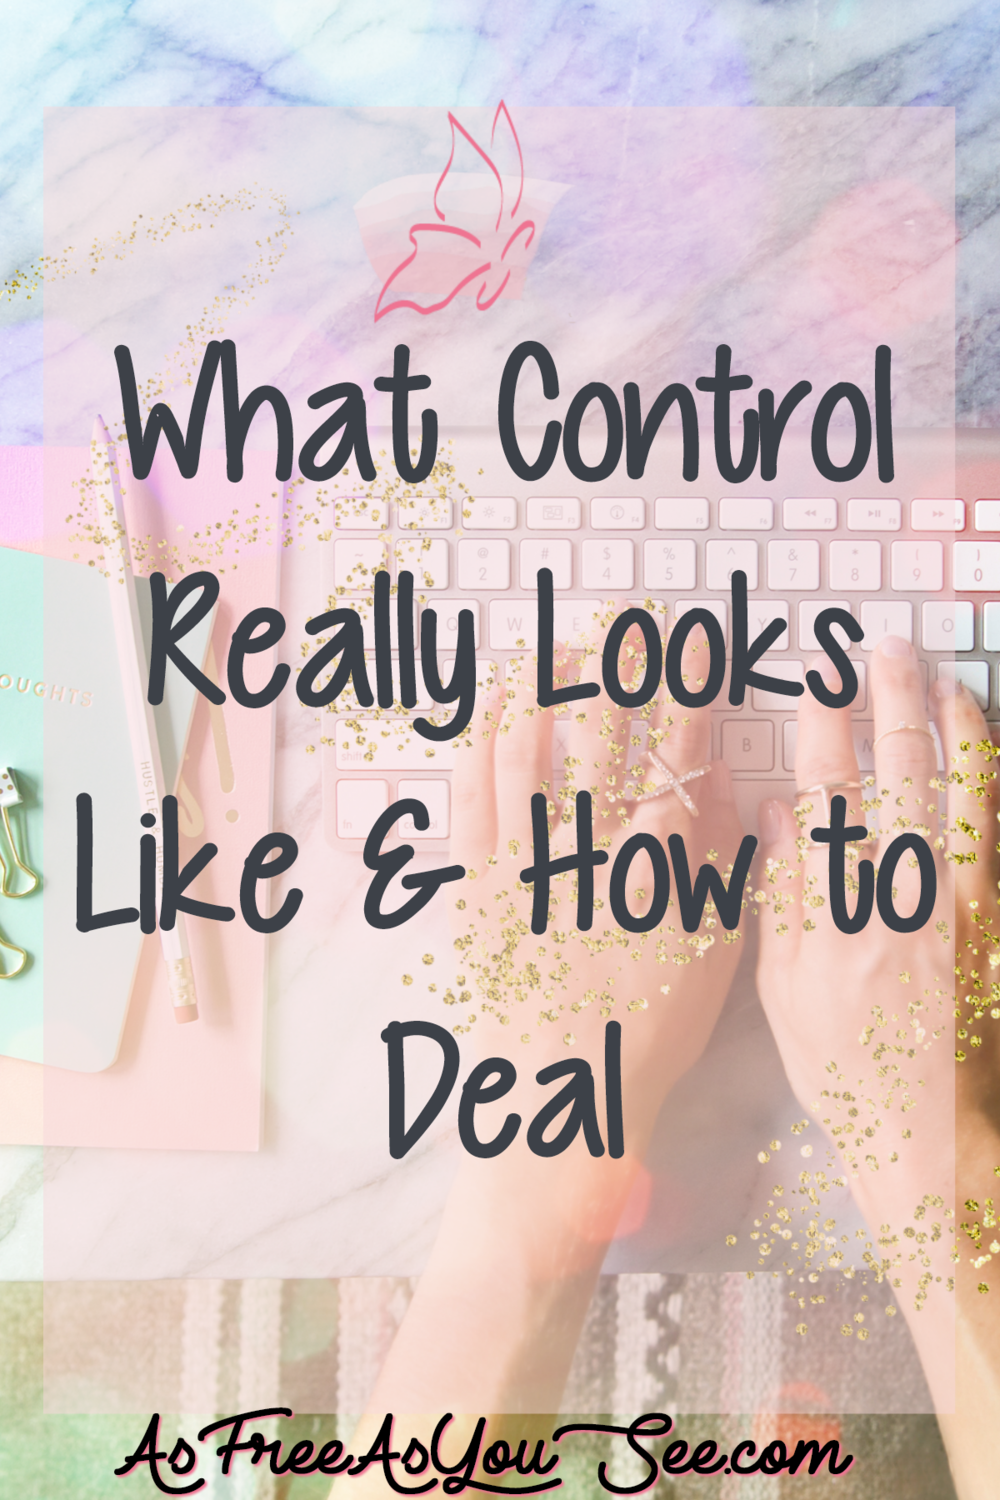 What Control Really Looks Like & How to Deal